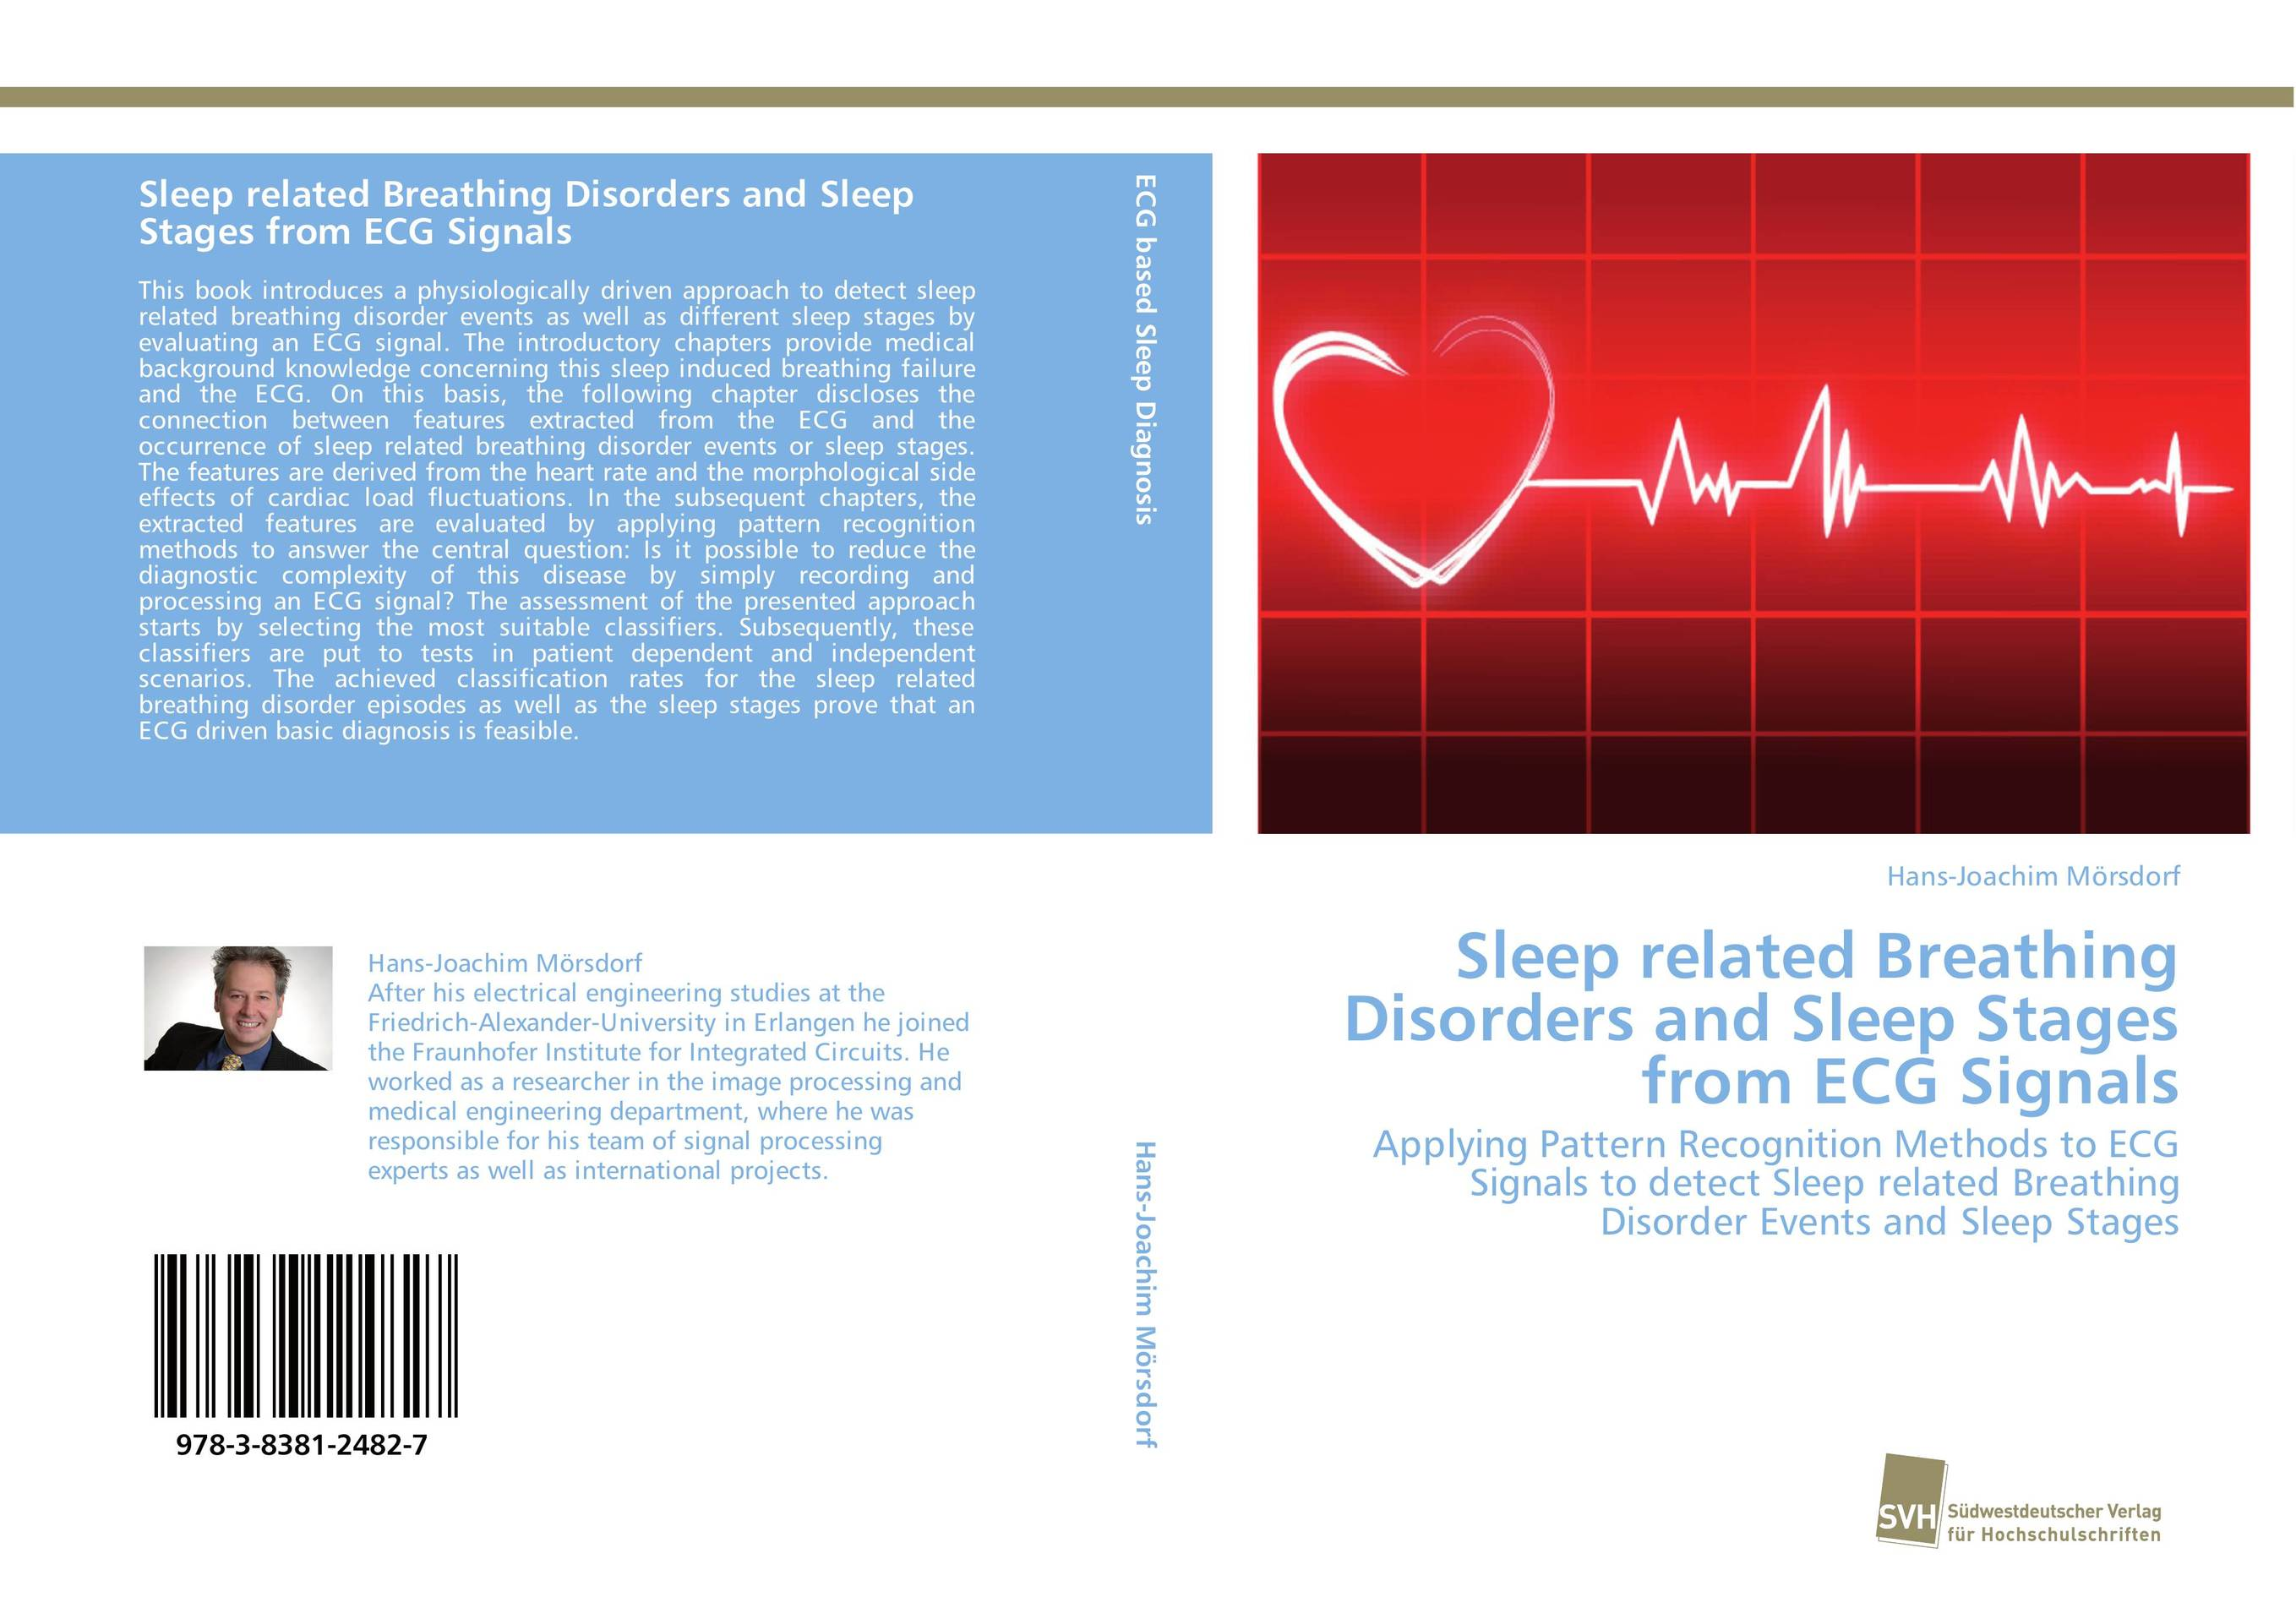 Sleep related Breathing Disorders and Sleep Stages from ECG Signals the art of not breathing